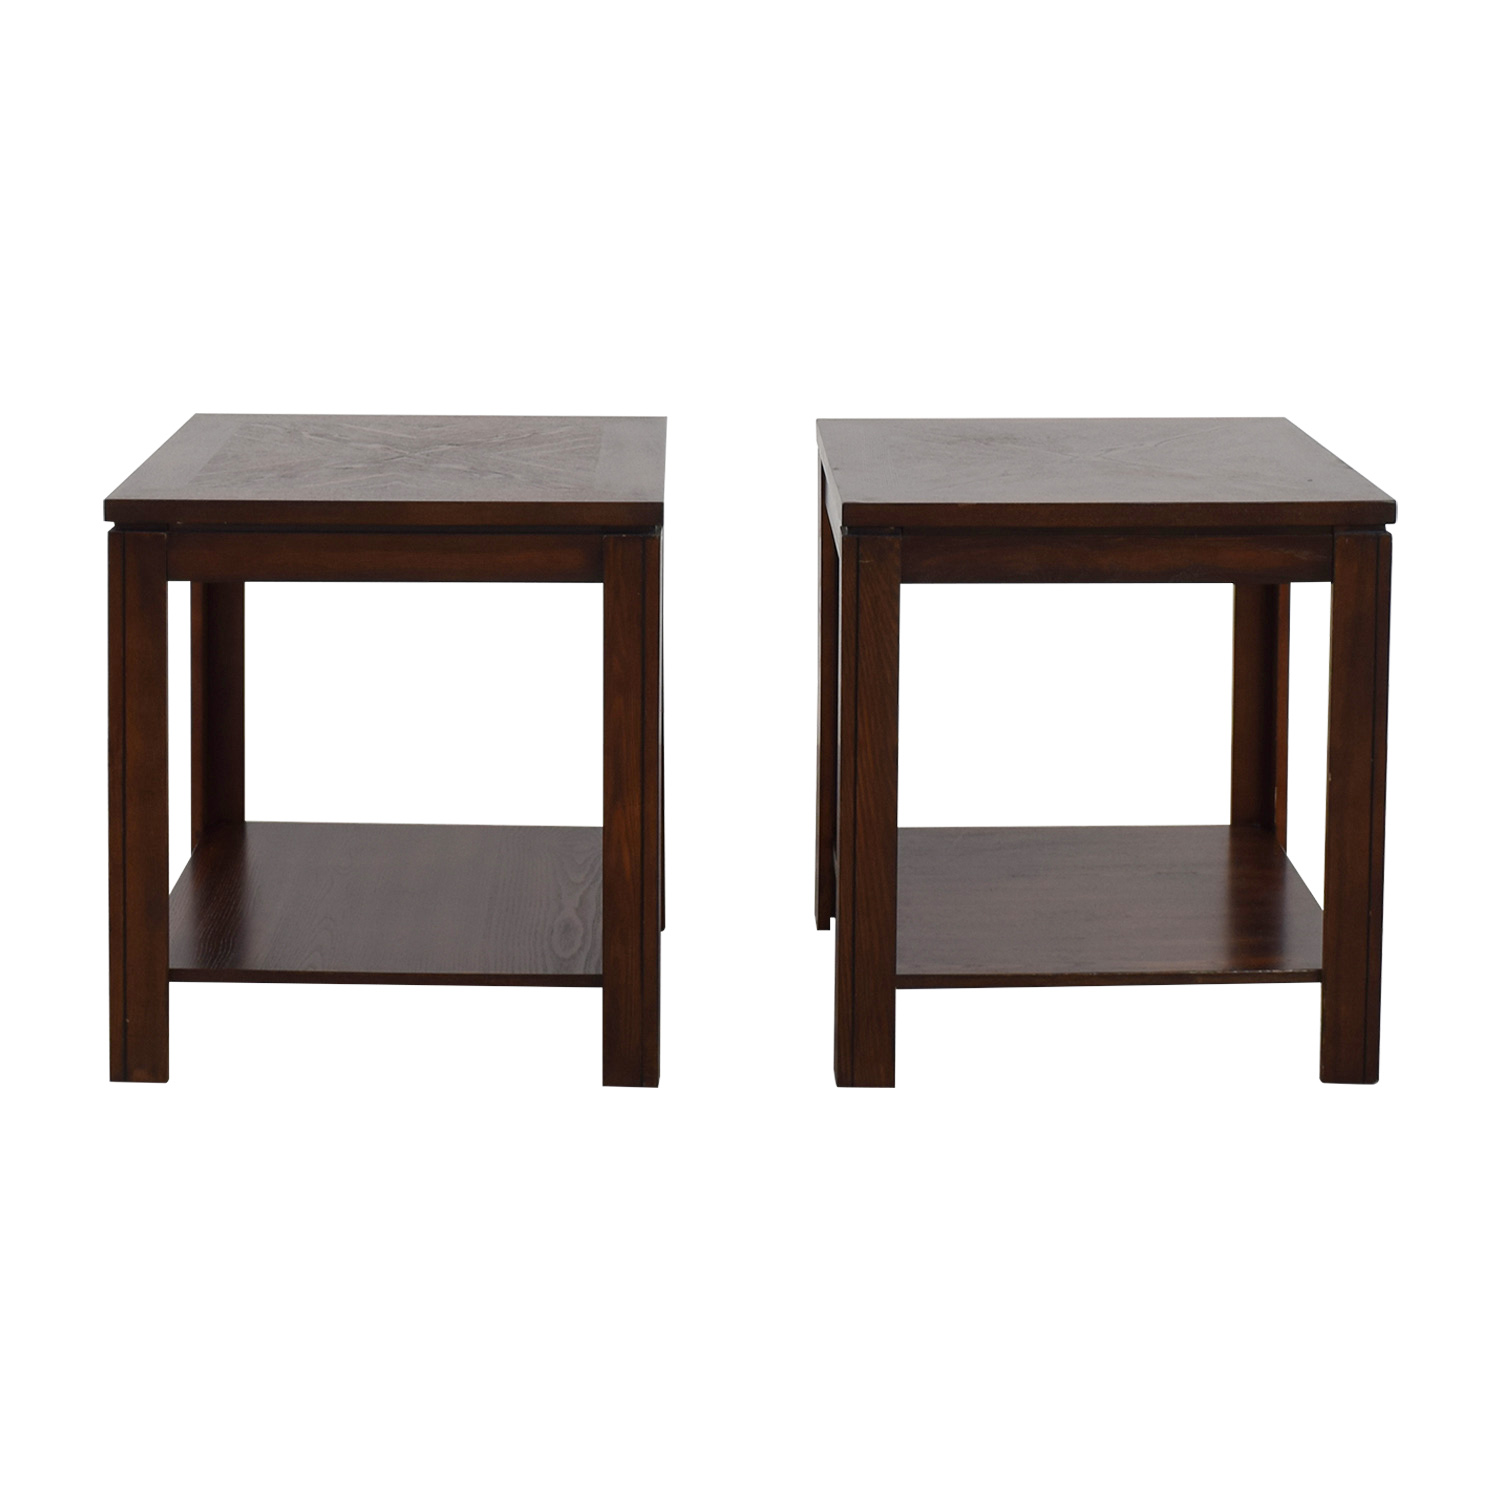 Bob's Furniture Bob's Furniture Lower Shelf End Tables End Tables